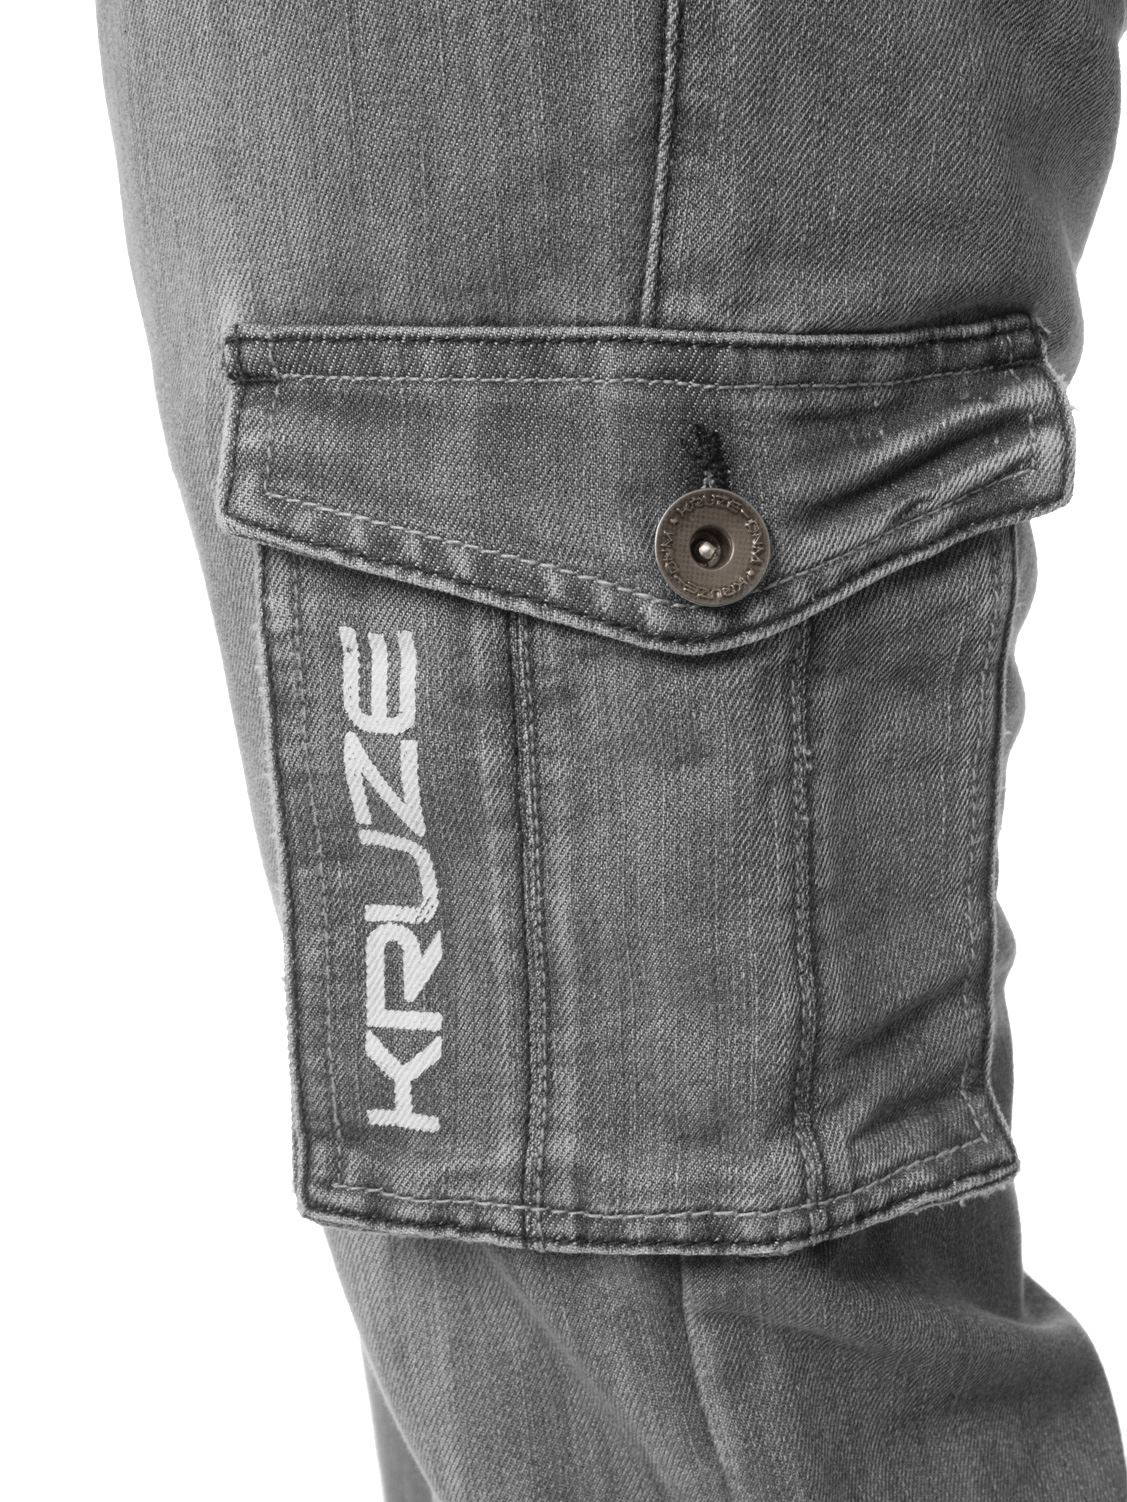 Kruze-Mens-Cargo-Combat-Jeans-Casual-Work-Denim-Pants-Big-Tall-All-Waist-Sizes thumbnail 33